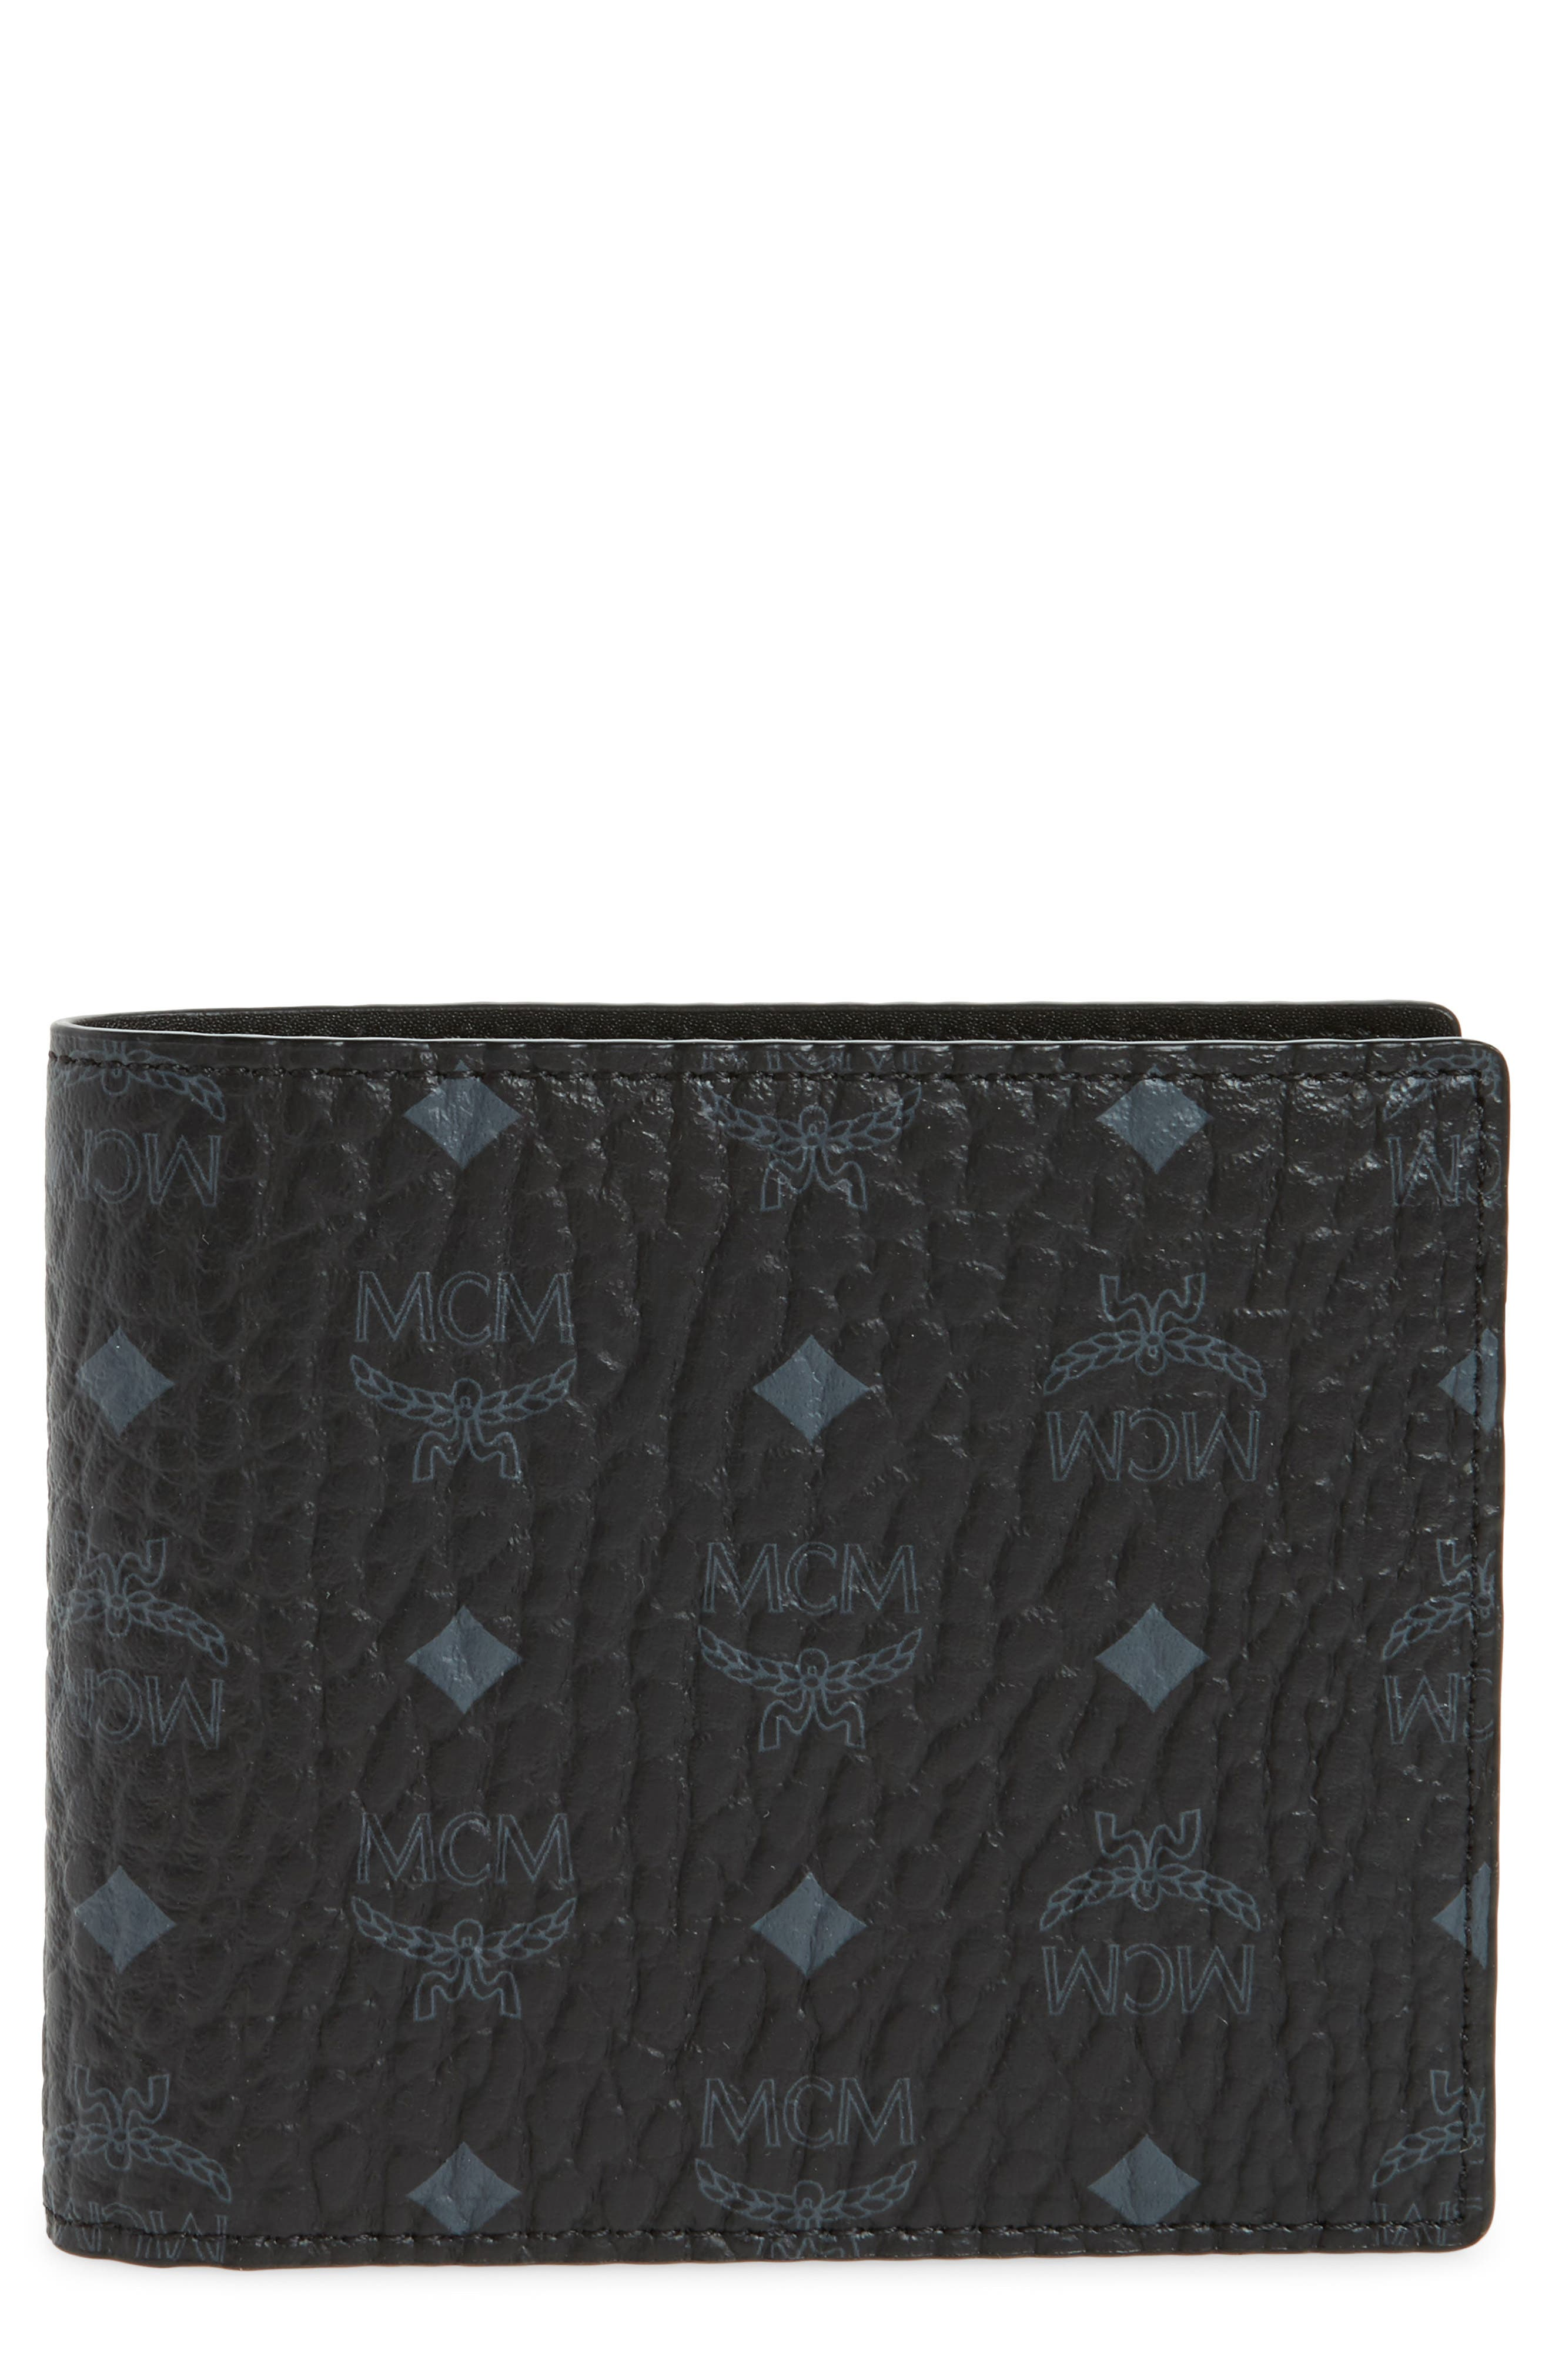 MCM Logo Coated Canvas & Leather Wallet